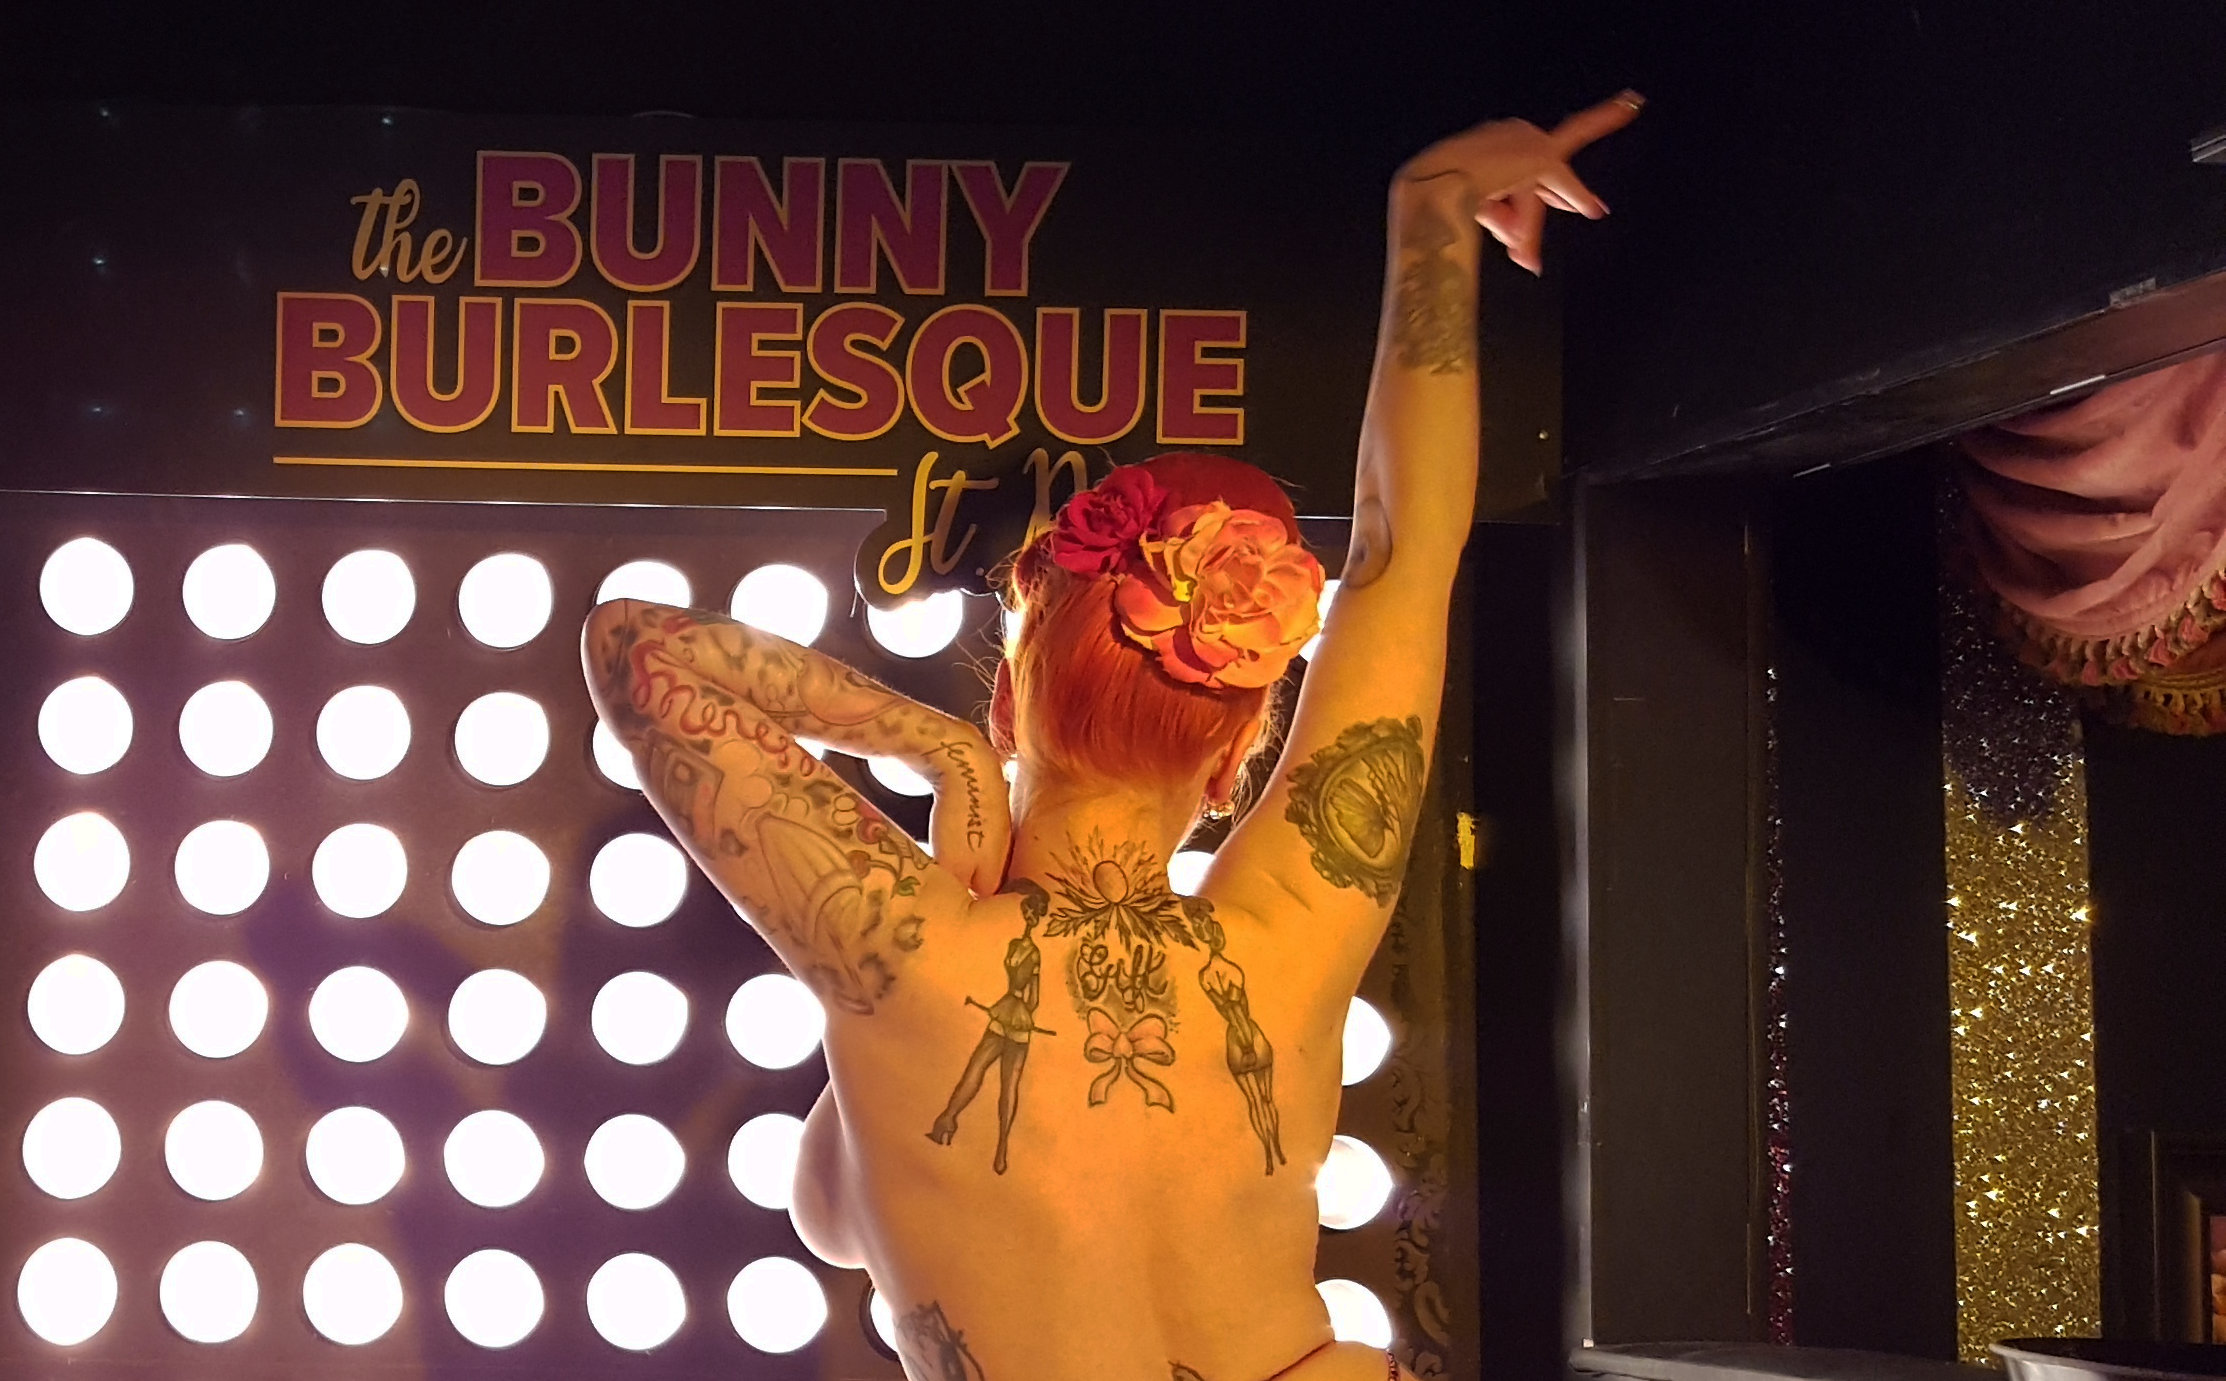 Hamburger Kiez, Bunny Burlesque